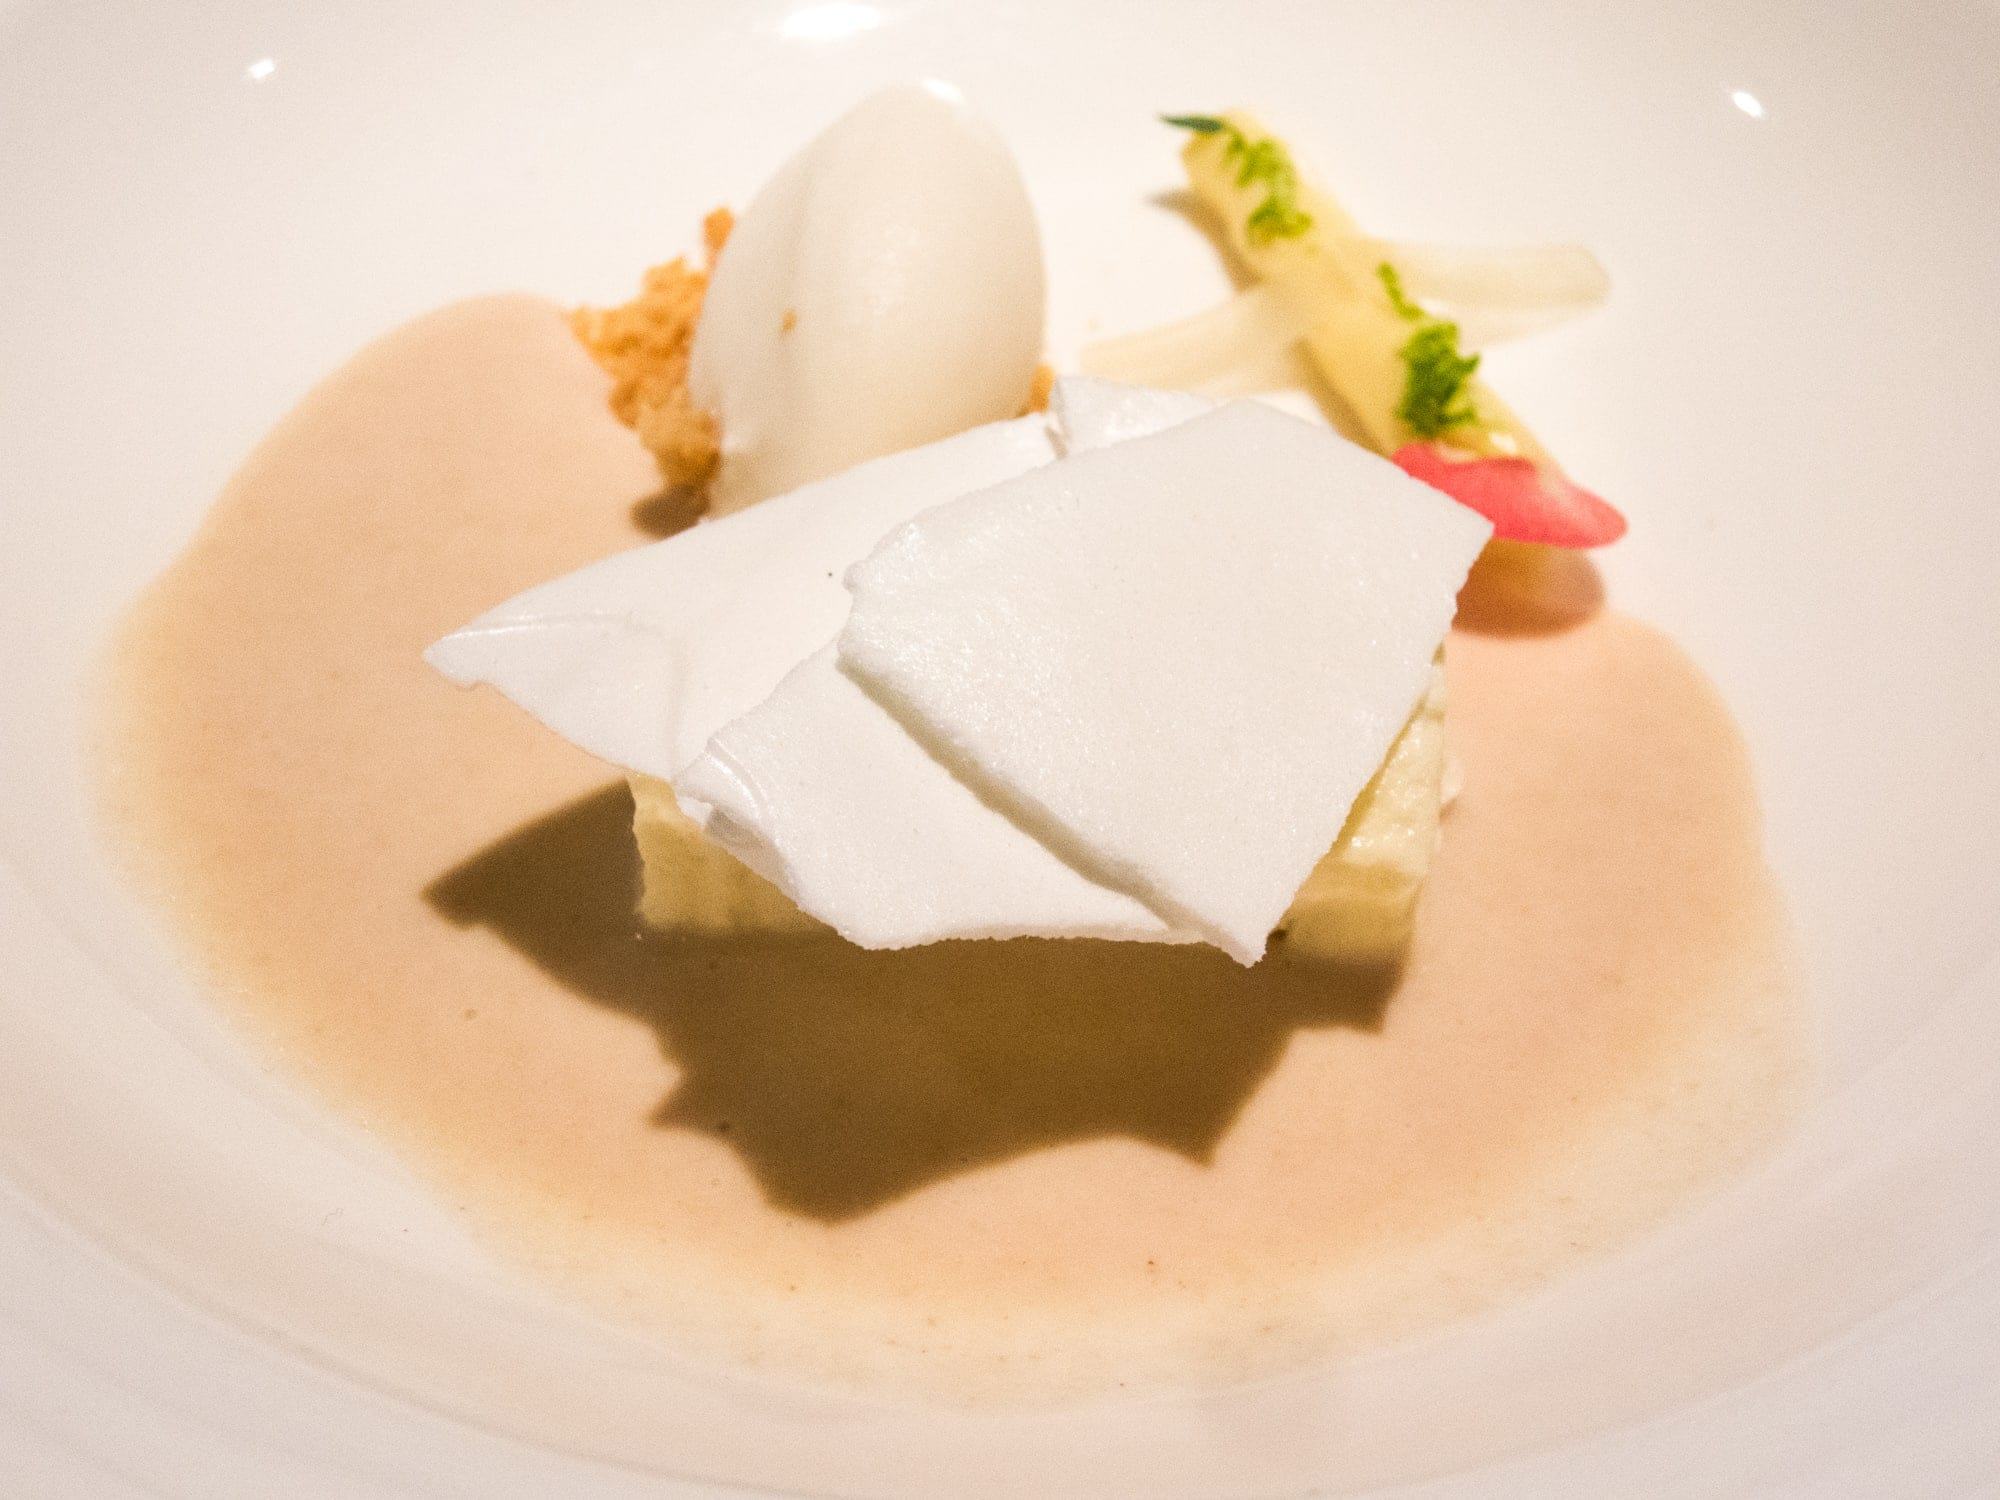 Thyme glazed biscuit, lemon gelatin, ice cream, cookie soup, and white chocolate